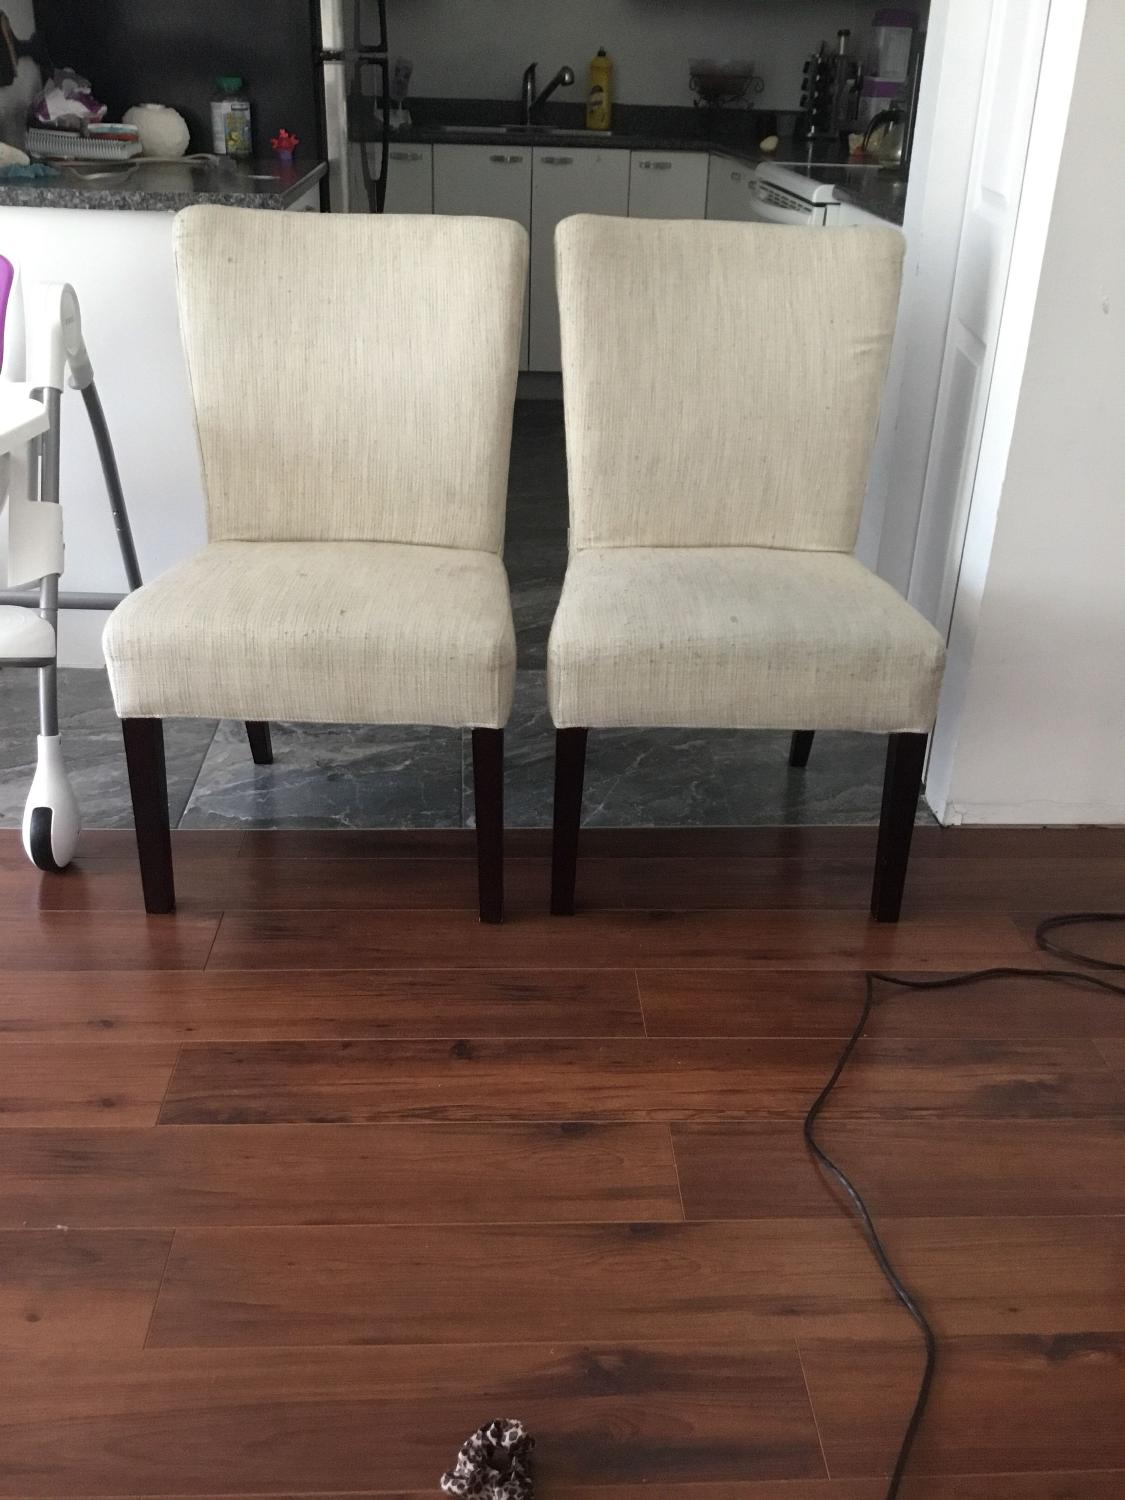 Find More 4 Mobilia Dining Chairs For Sale At Up To 90